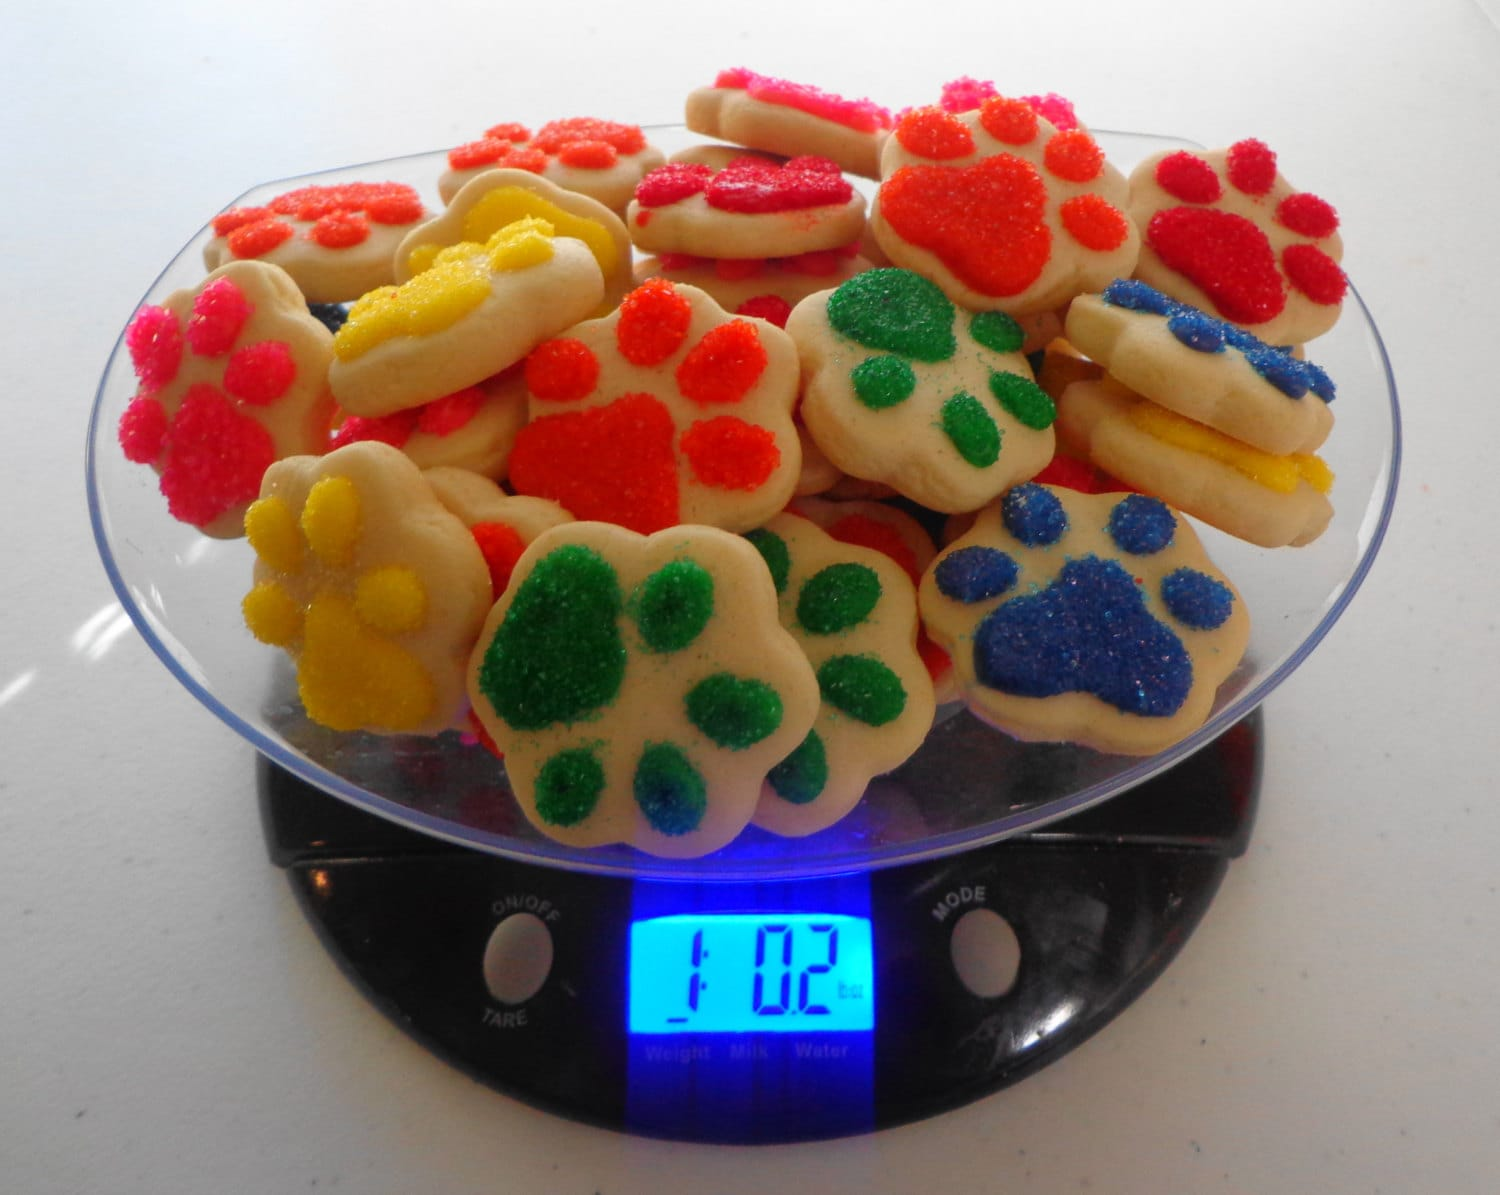 Pound Of Paw Patrol Paws Cookie Charms Paw Print Cookies Paw # Muebles Sirena Animal Crossing